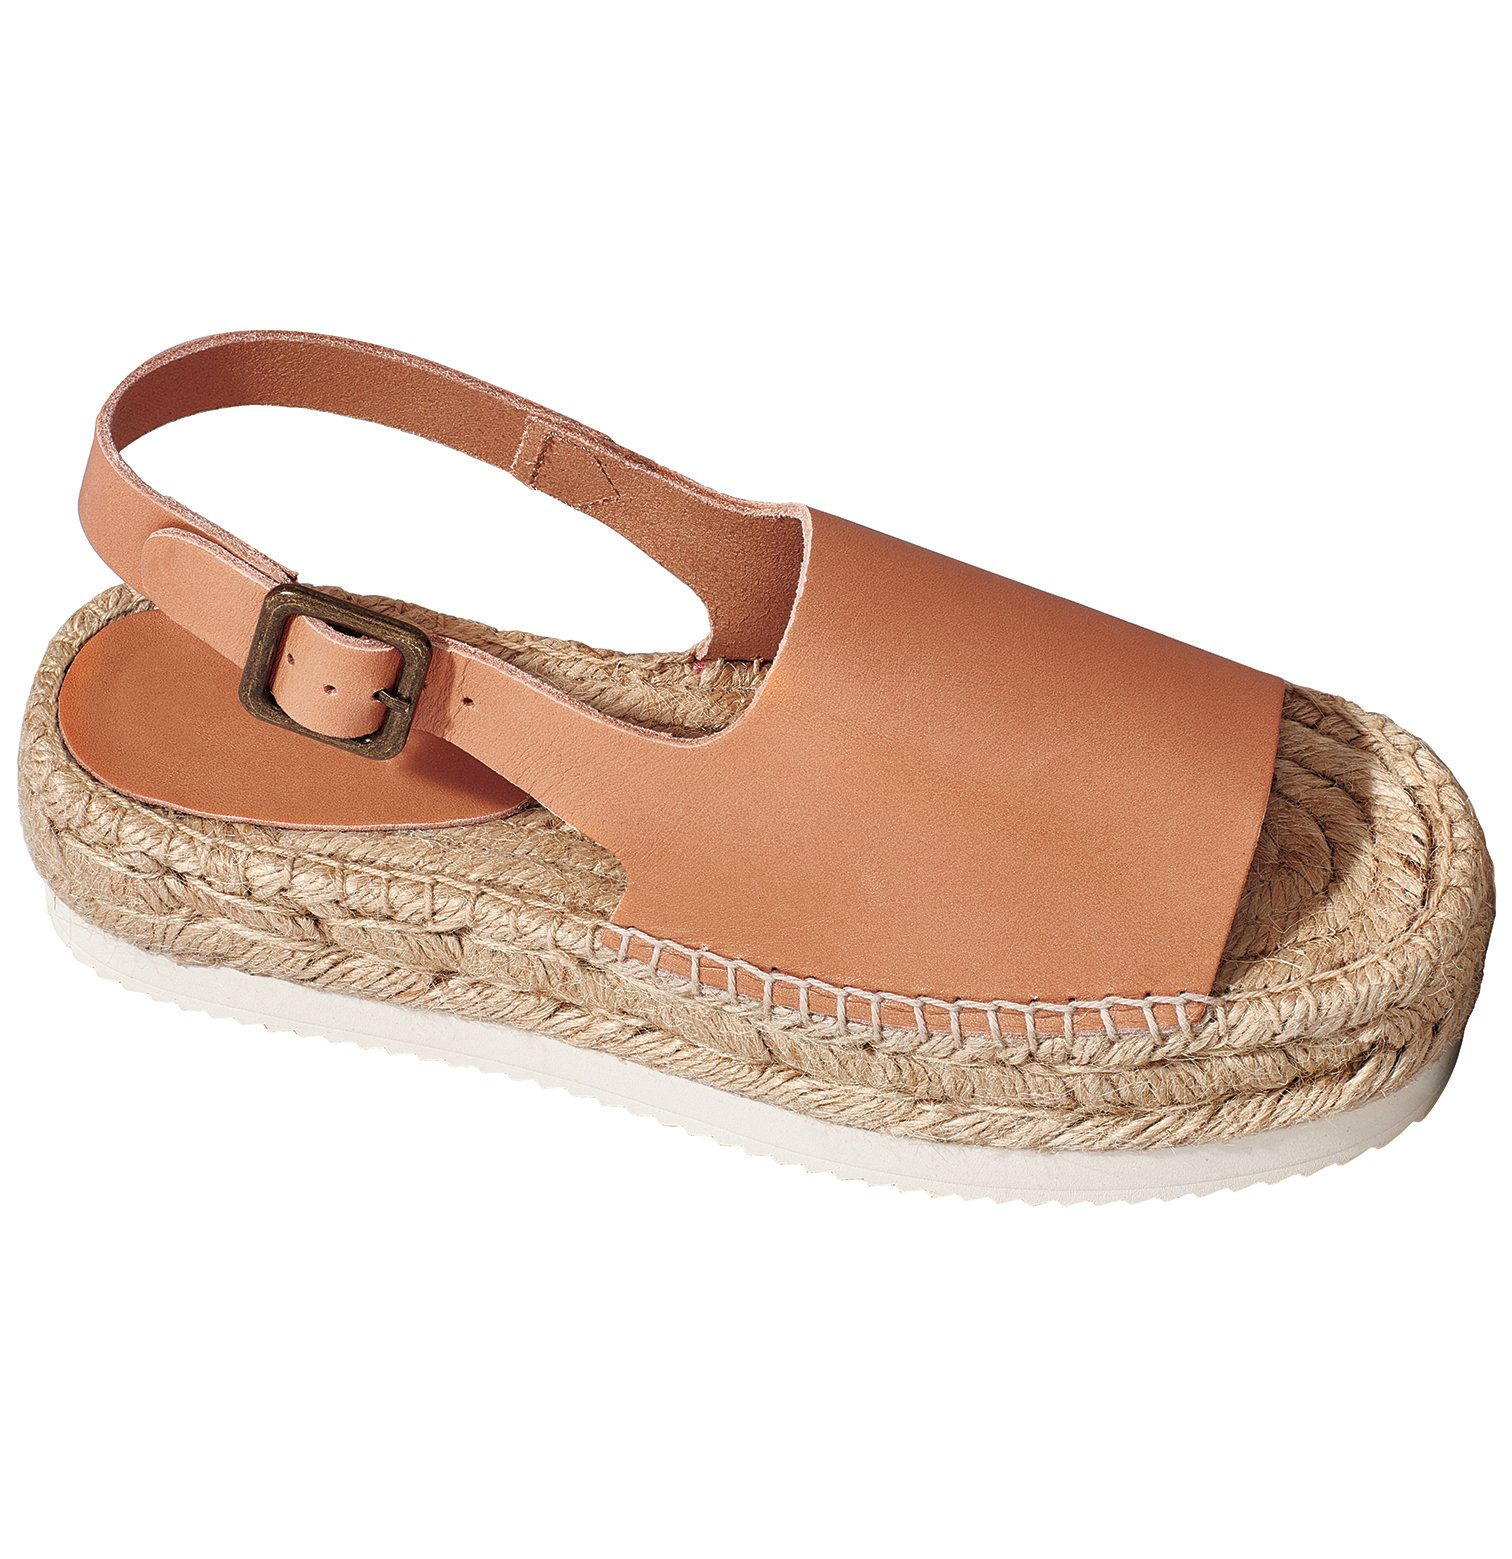 Soludos Tilda Leather Sandal